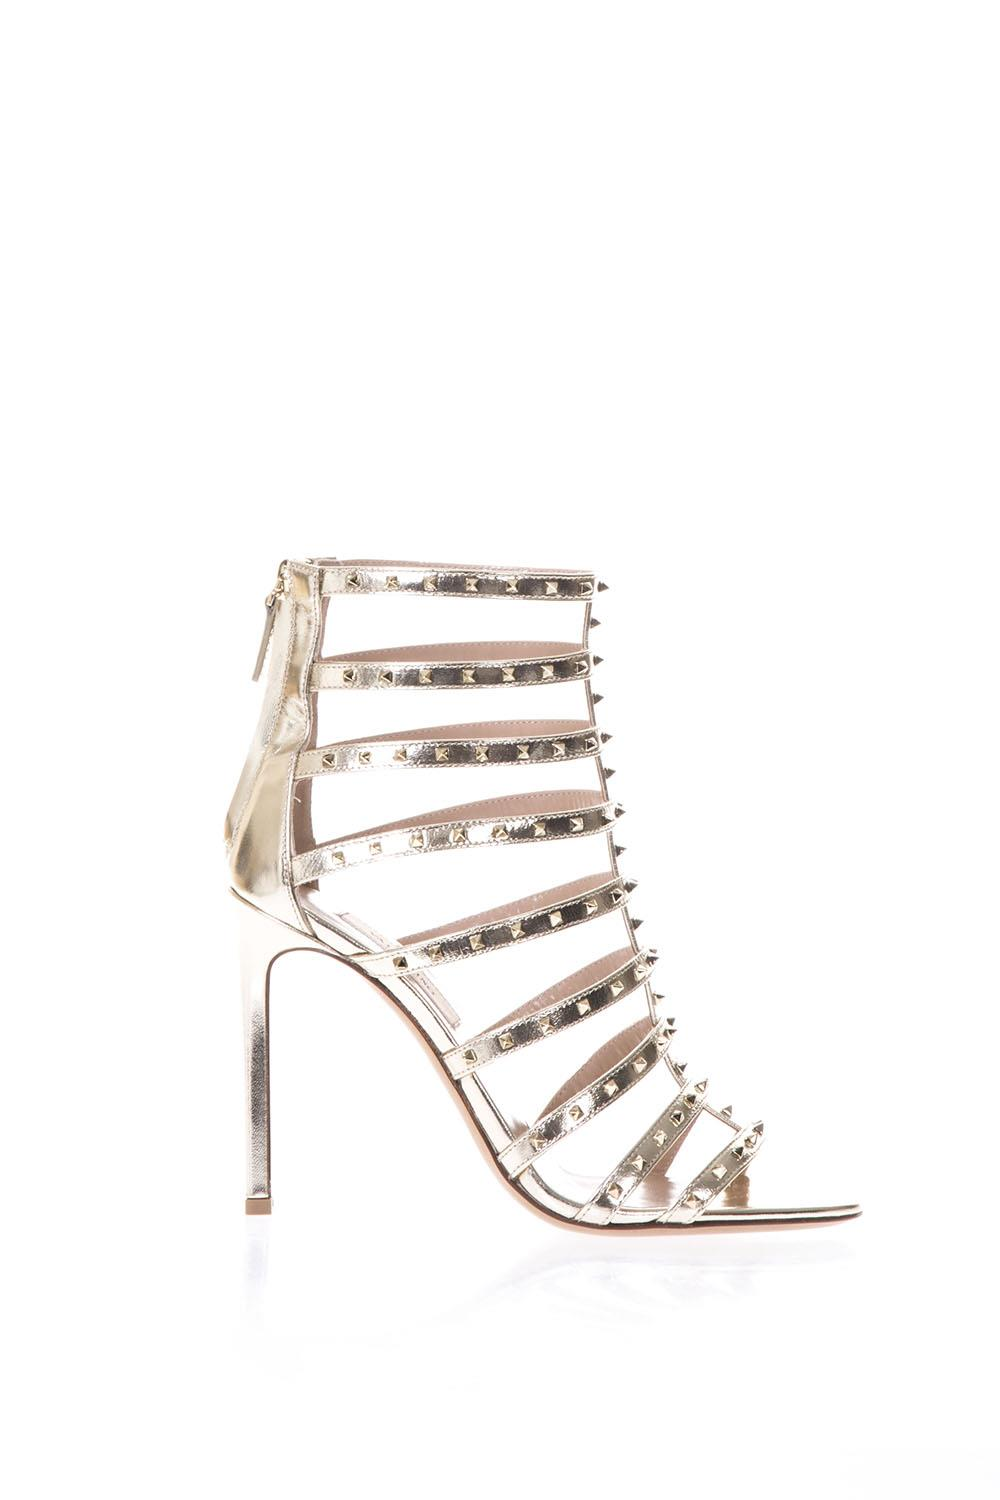 b9d087ad0515 LOVESTUD PLATINUM METALLIC LEATHER SANDALS SS 2018 - VALENTINO GARAVANI -  Boutique Galiano